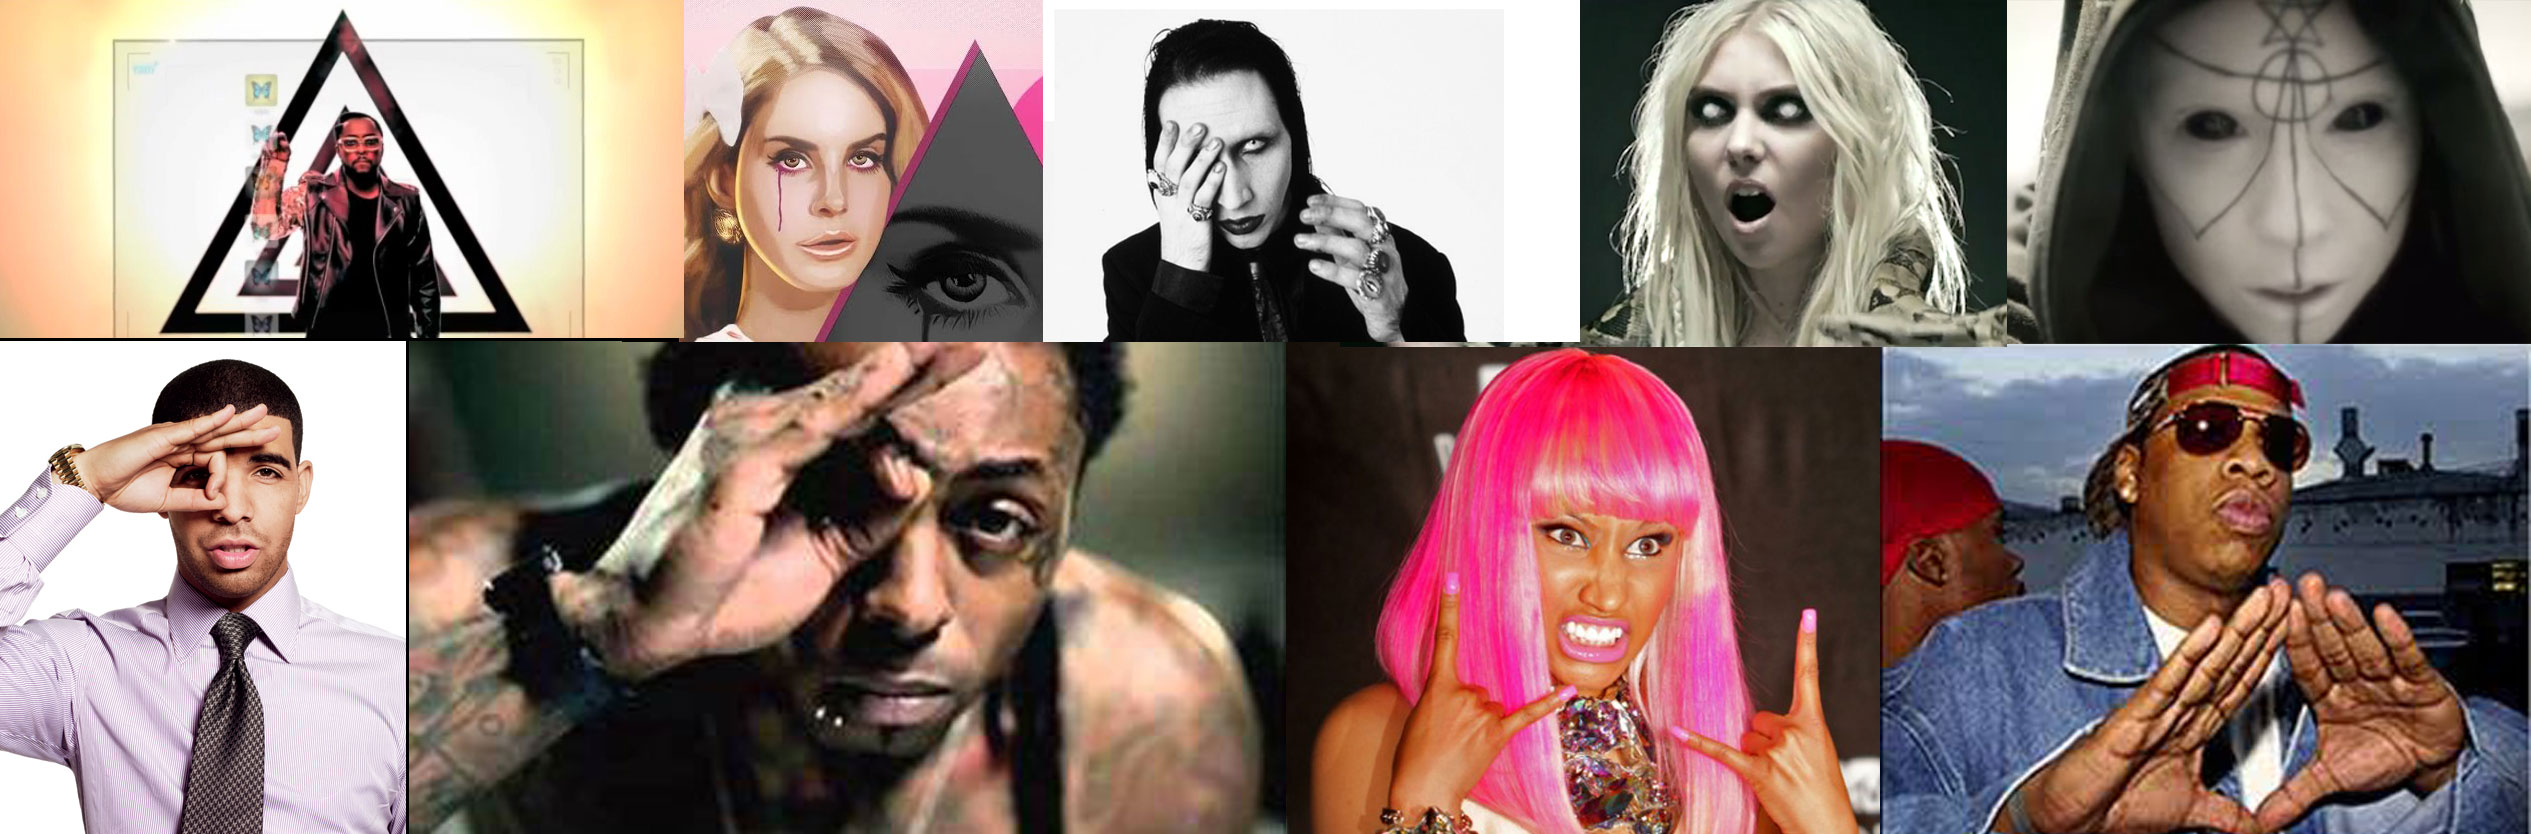 Music industry exposed part 3 black magic and dark hidden a selection of interscope artists with some familiar symbology or looking demonic biocorpaavc Choice Image